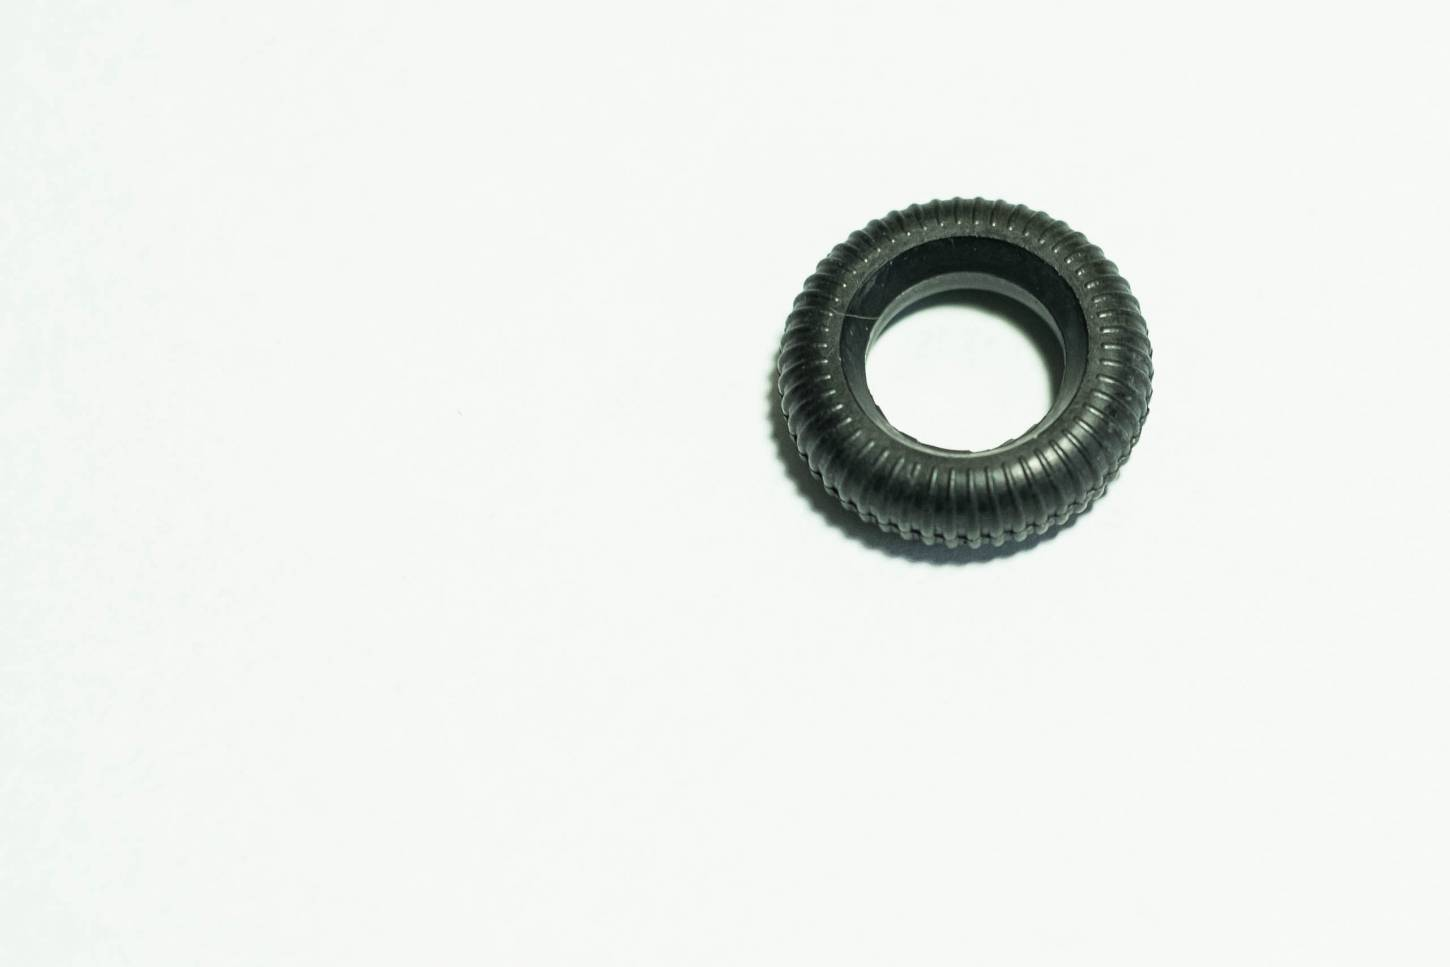 1x rubber wheel For Tung Lin dynamo and Basil northern lights dynamo